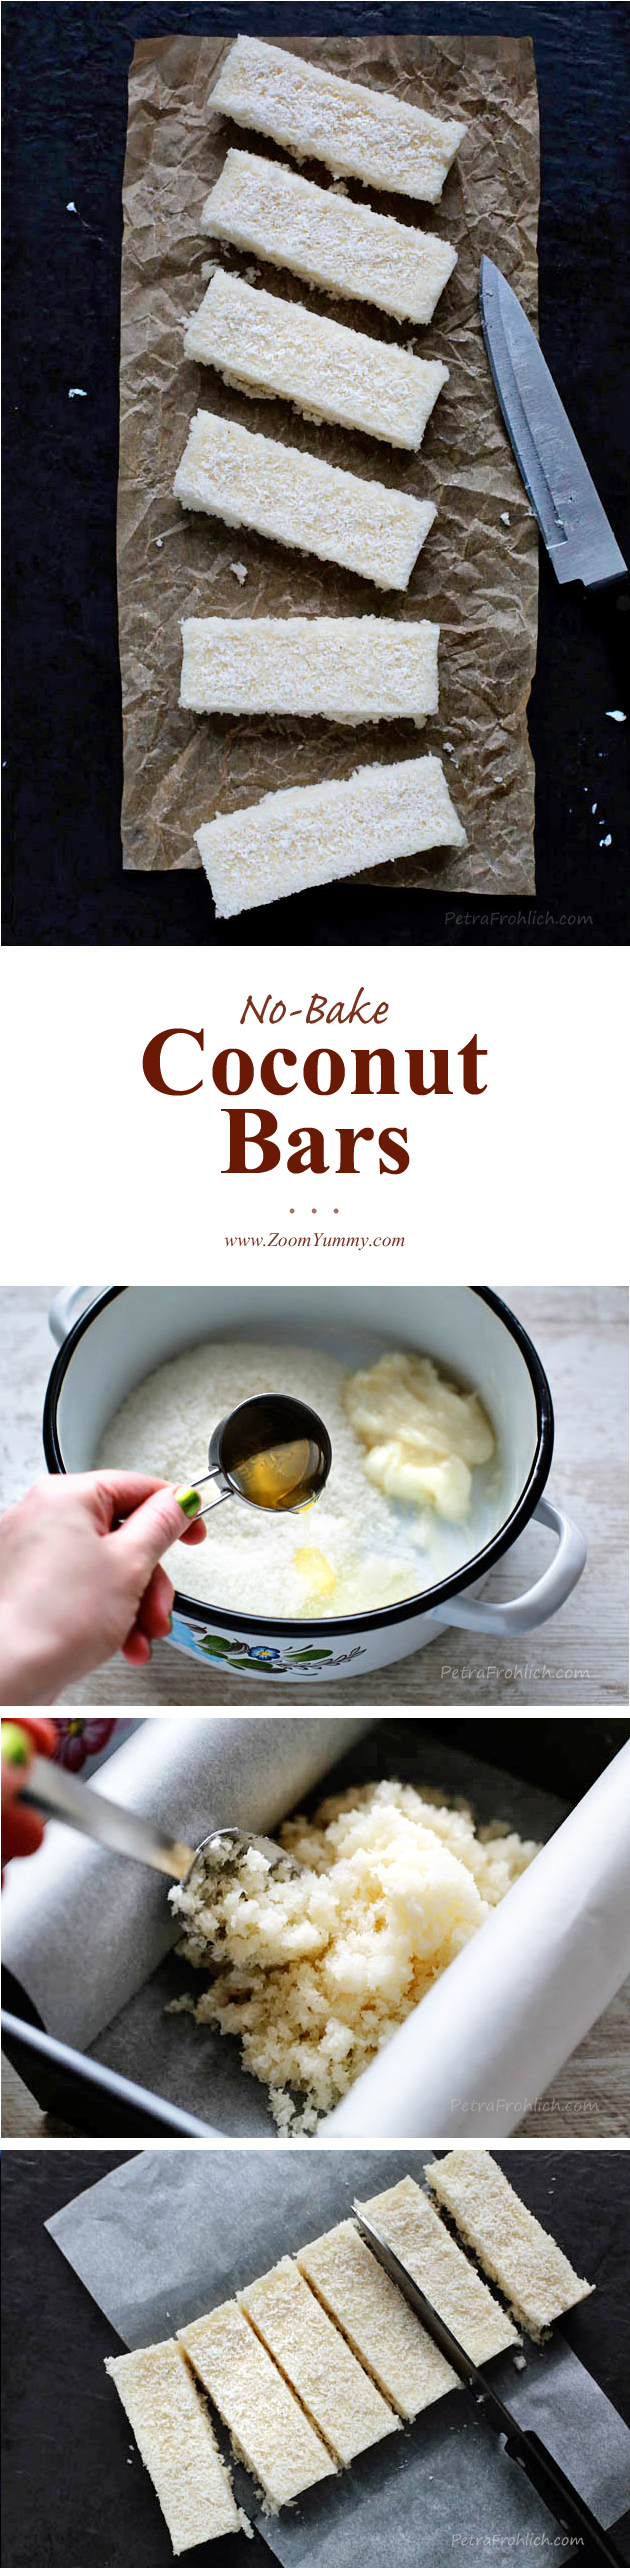 crack-coconut-bars-recipe